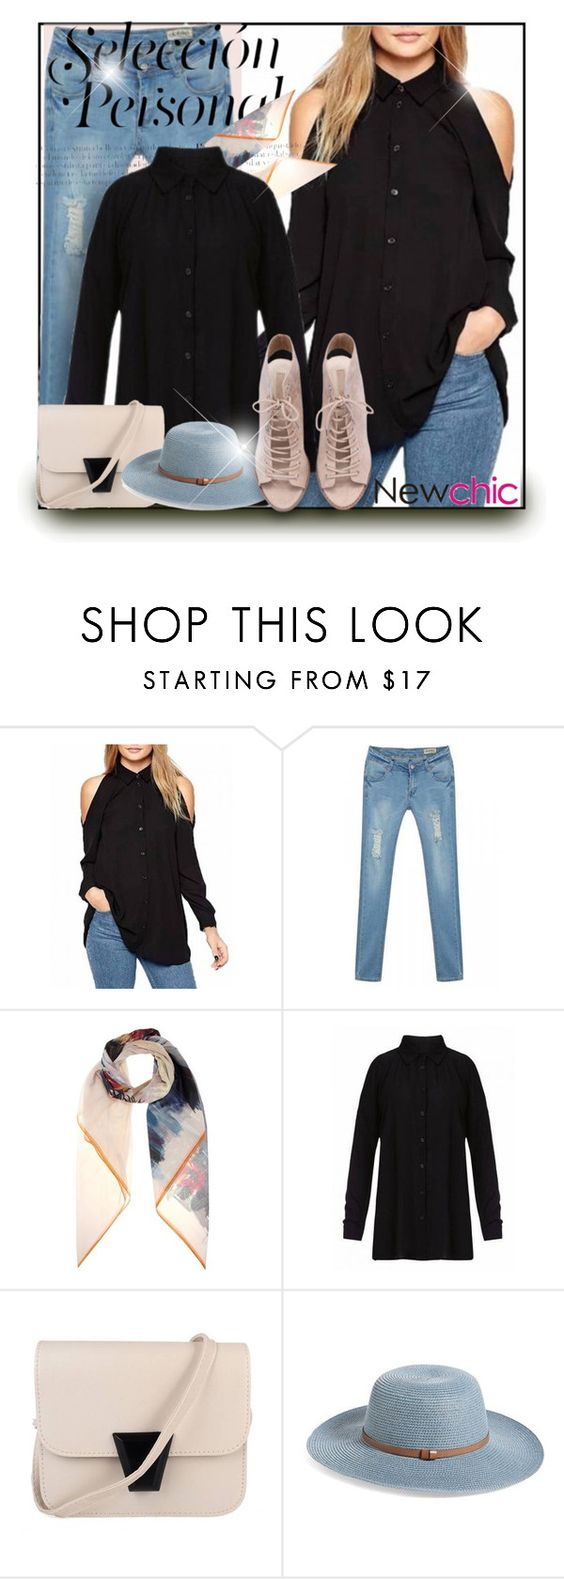 """""""Newchic"""" by jiabao-krohn ❤ liked on Polyvore featuring Valentino and Nordstrom"""